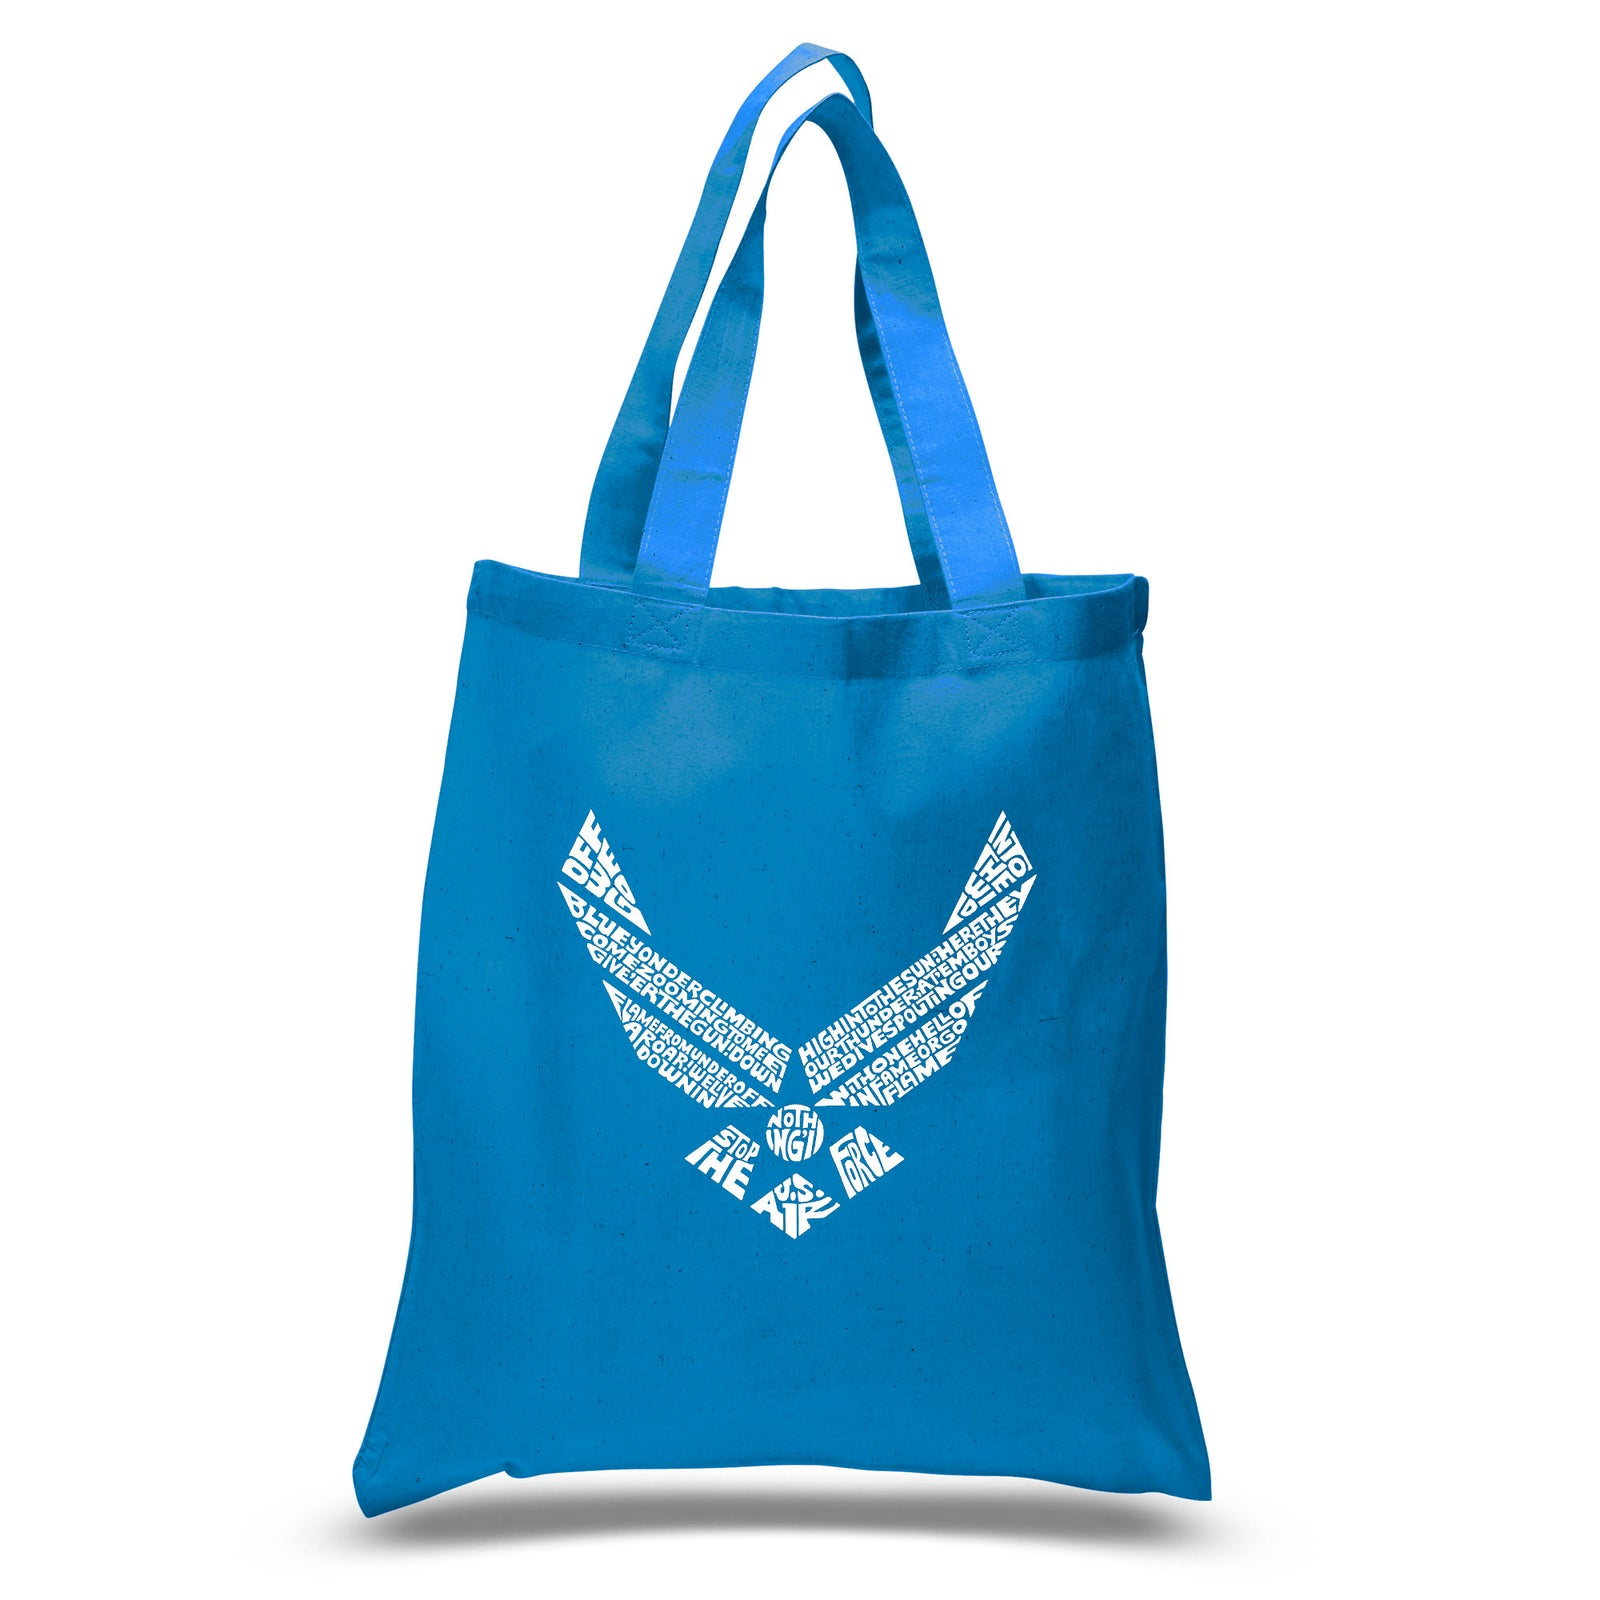 Small Tote Bag - LYRICS TO THE AIR FORCE SONG